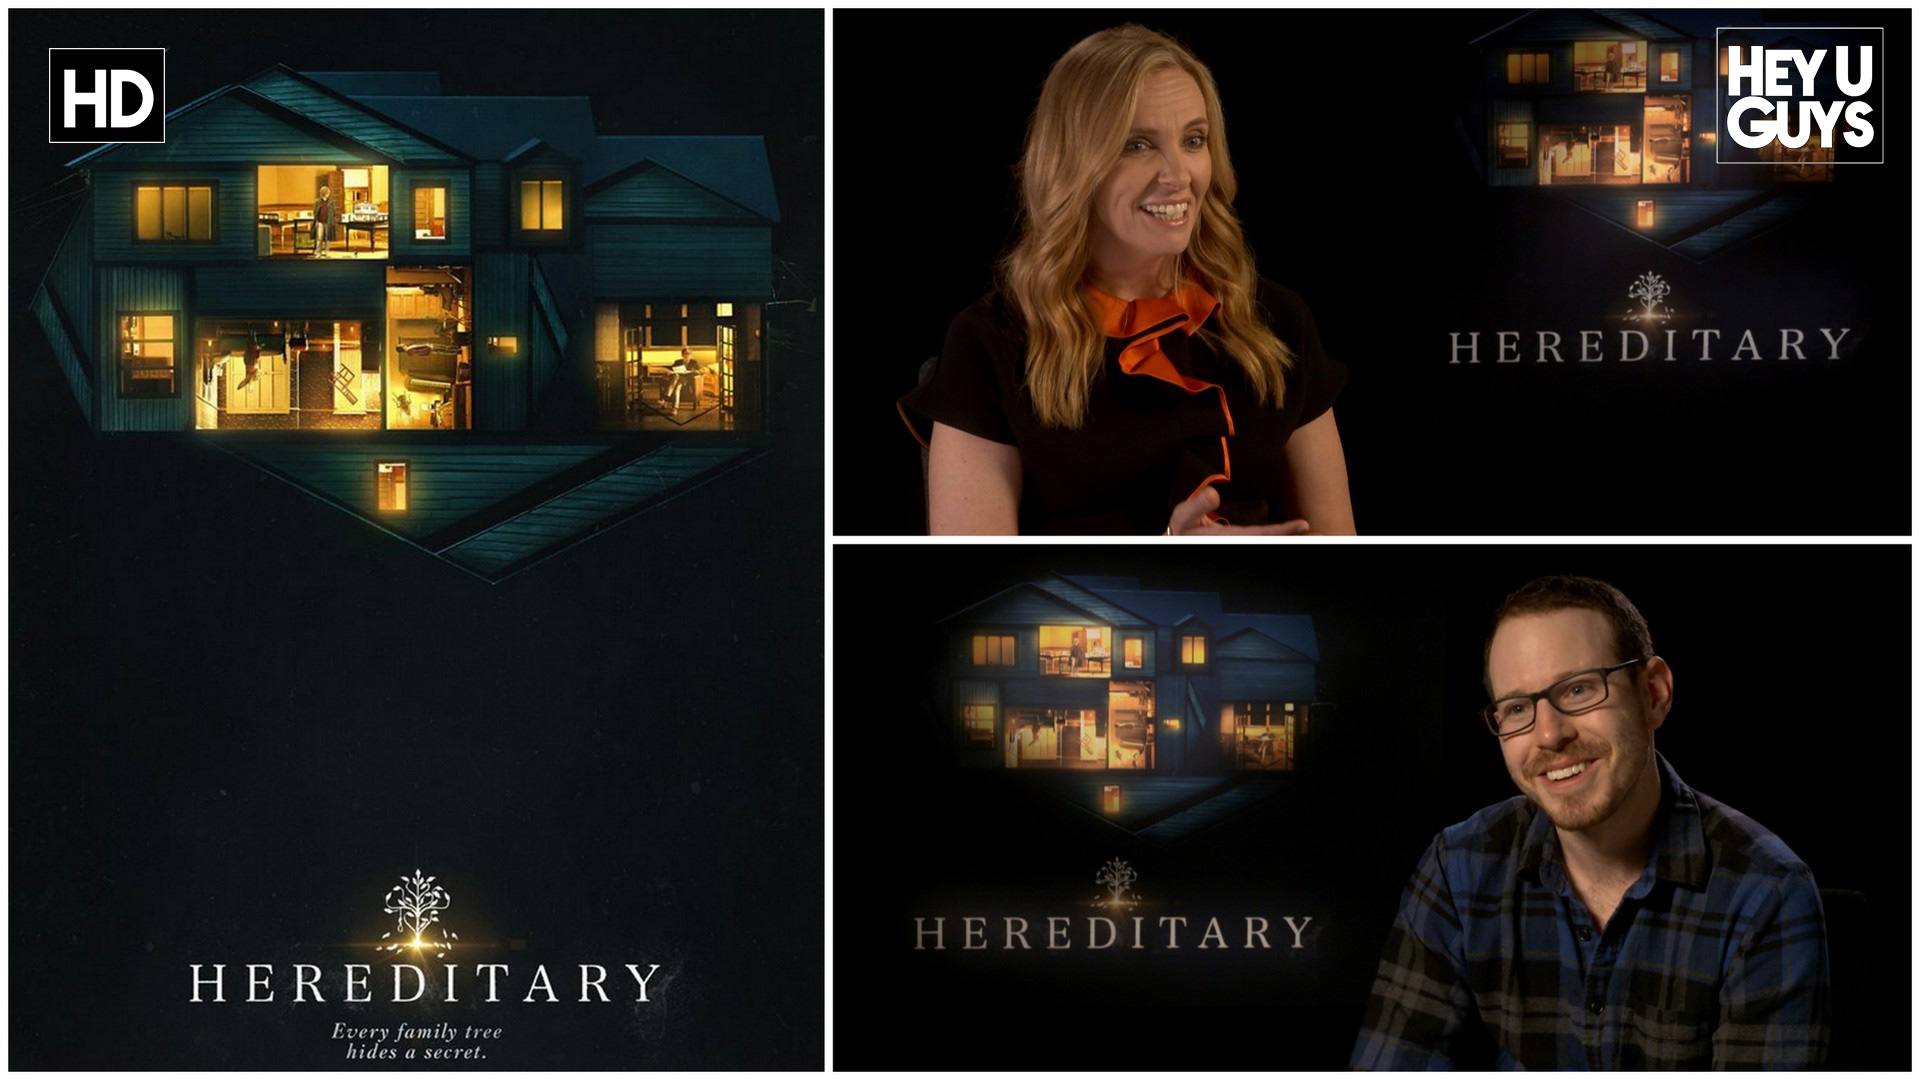 hereditary junket